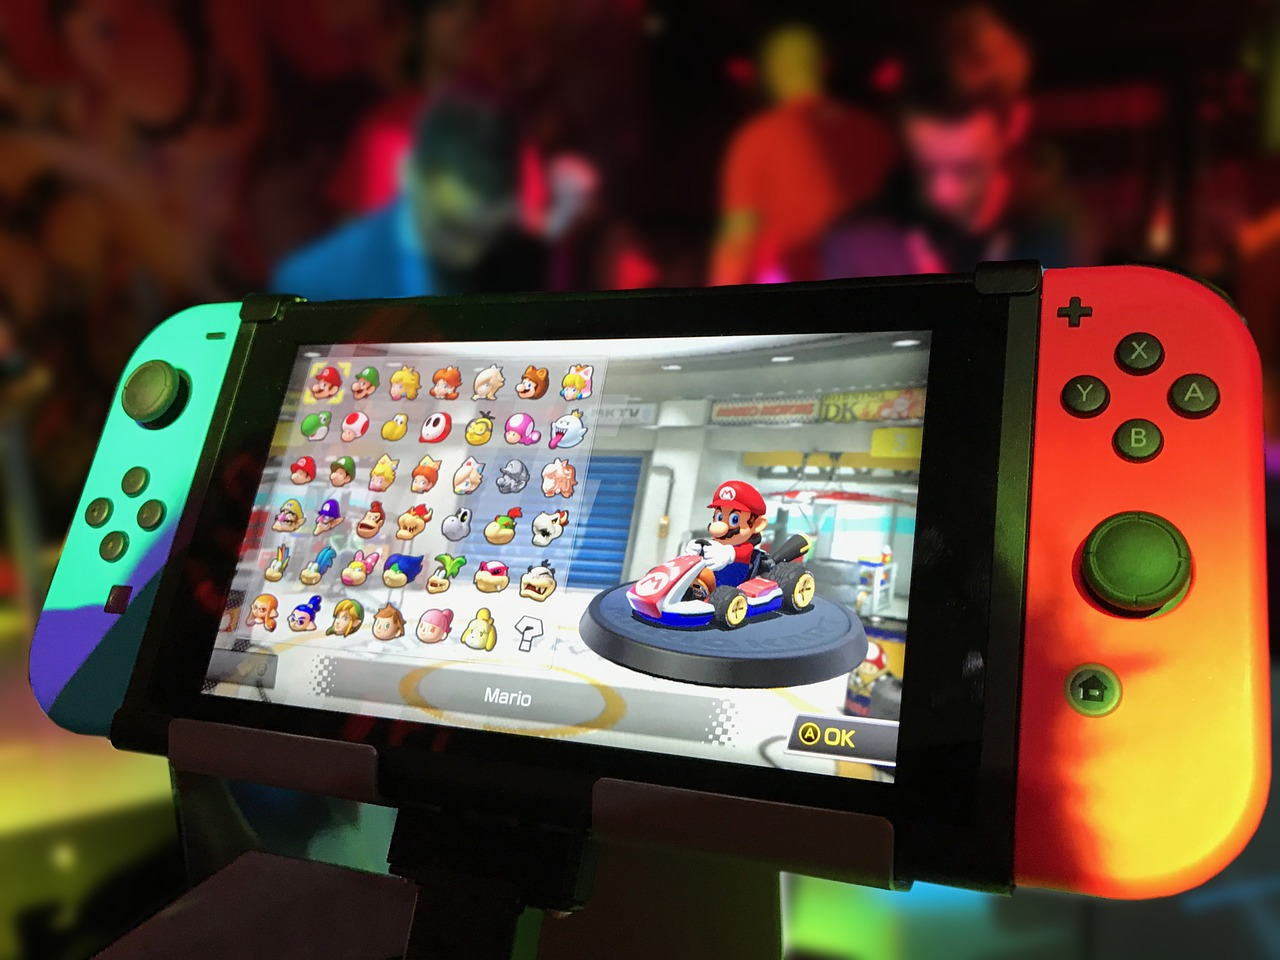 UK court grants Nintendo injunction requiring internet providers to block Switch piracy websites